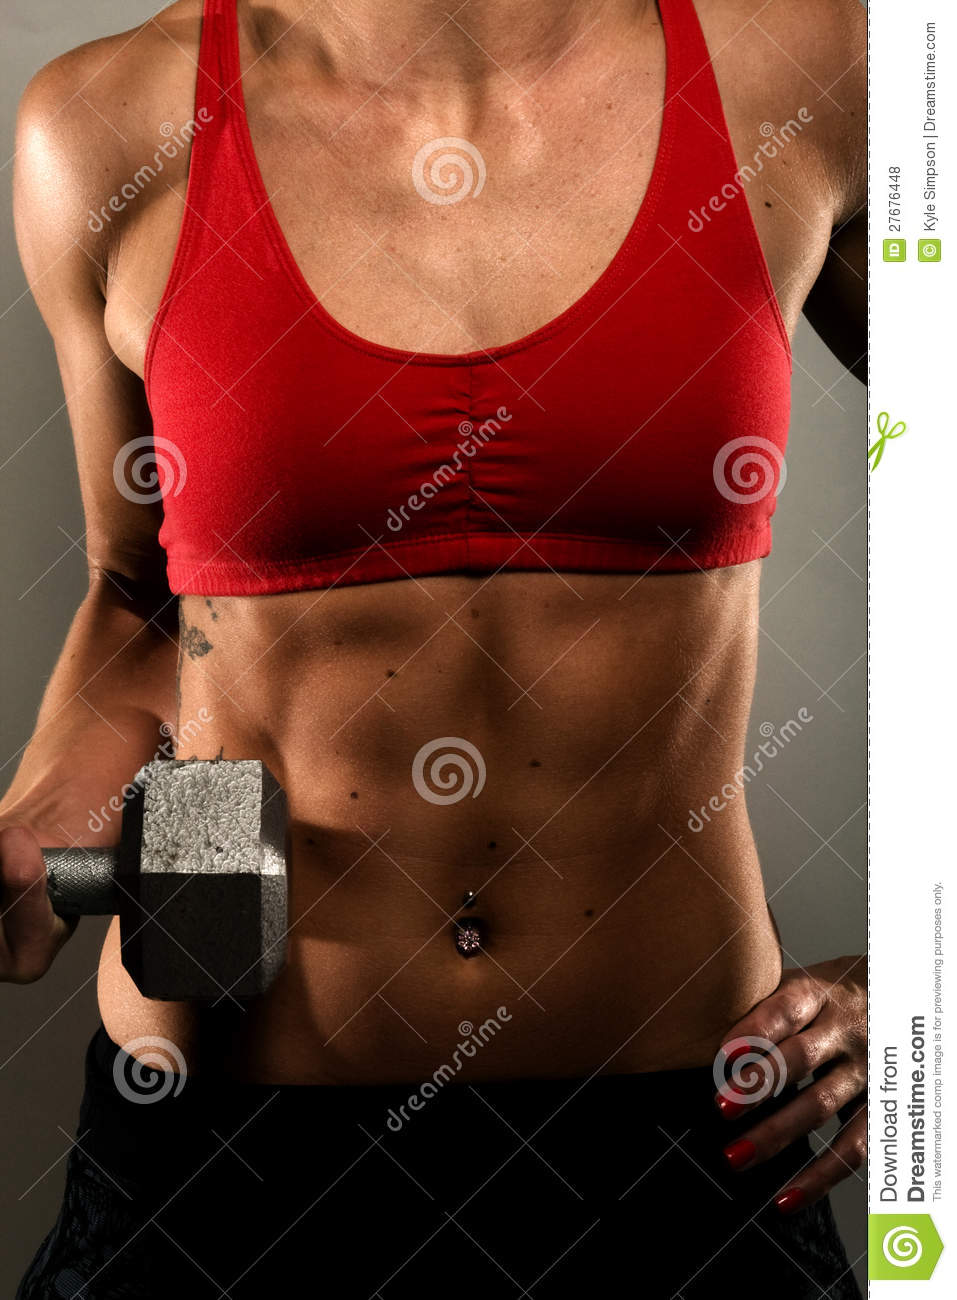 Healthy Fitness Woman Showing Her Muscles